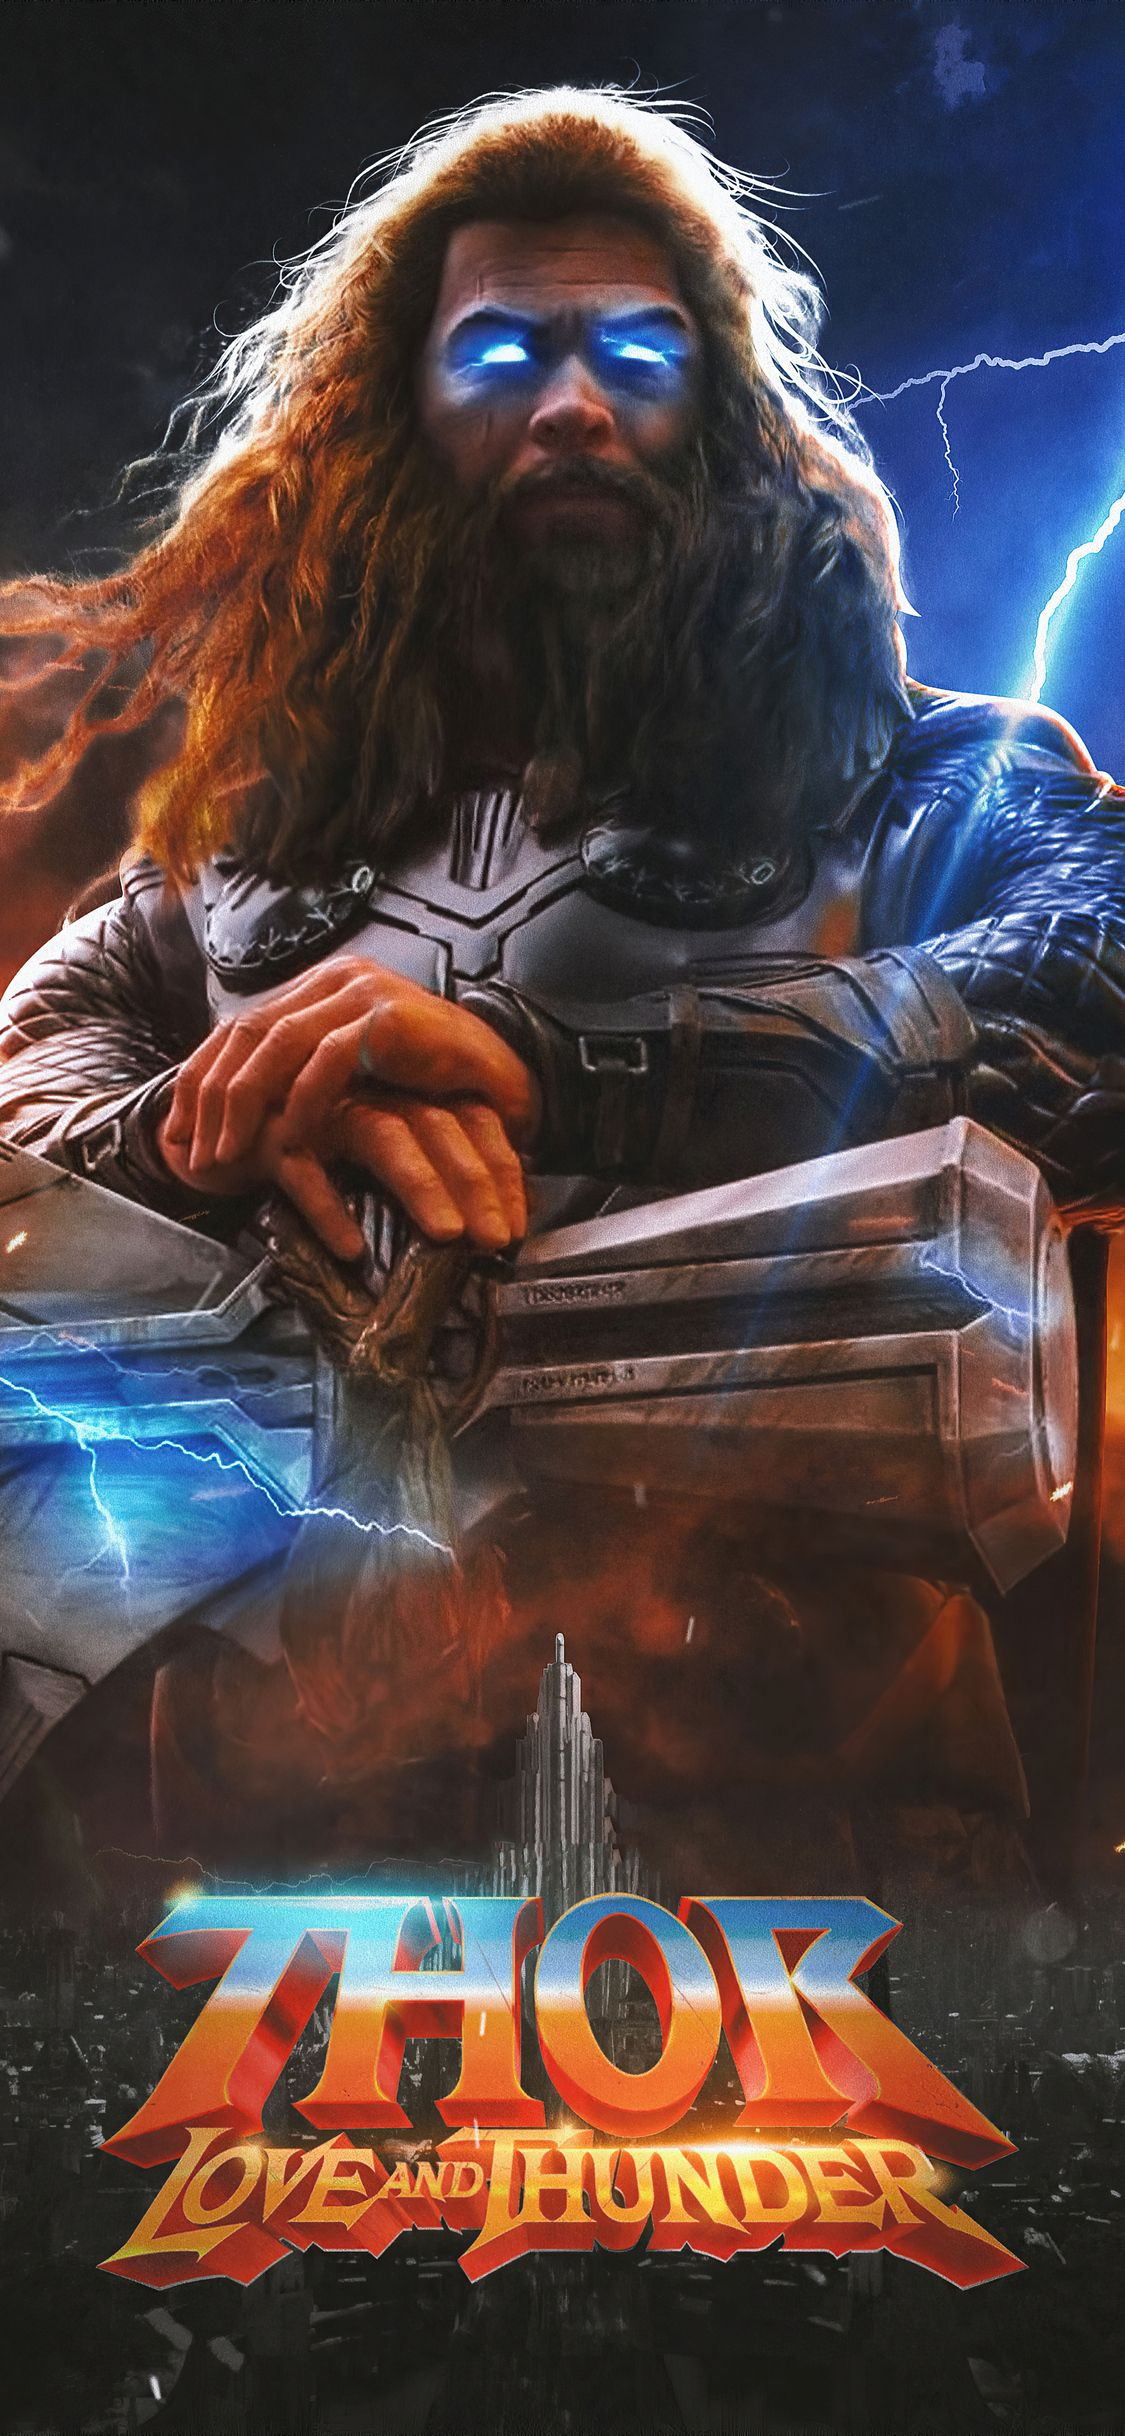 1125x2436 Thor Love And Thunder 2021 Movie Iphone XS,Iphone 10,Iphone X HD 4k Wallpapers, Image, Backgrounds, Photos and Pictures